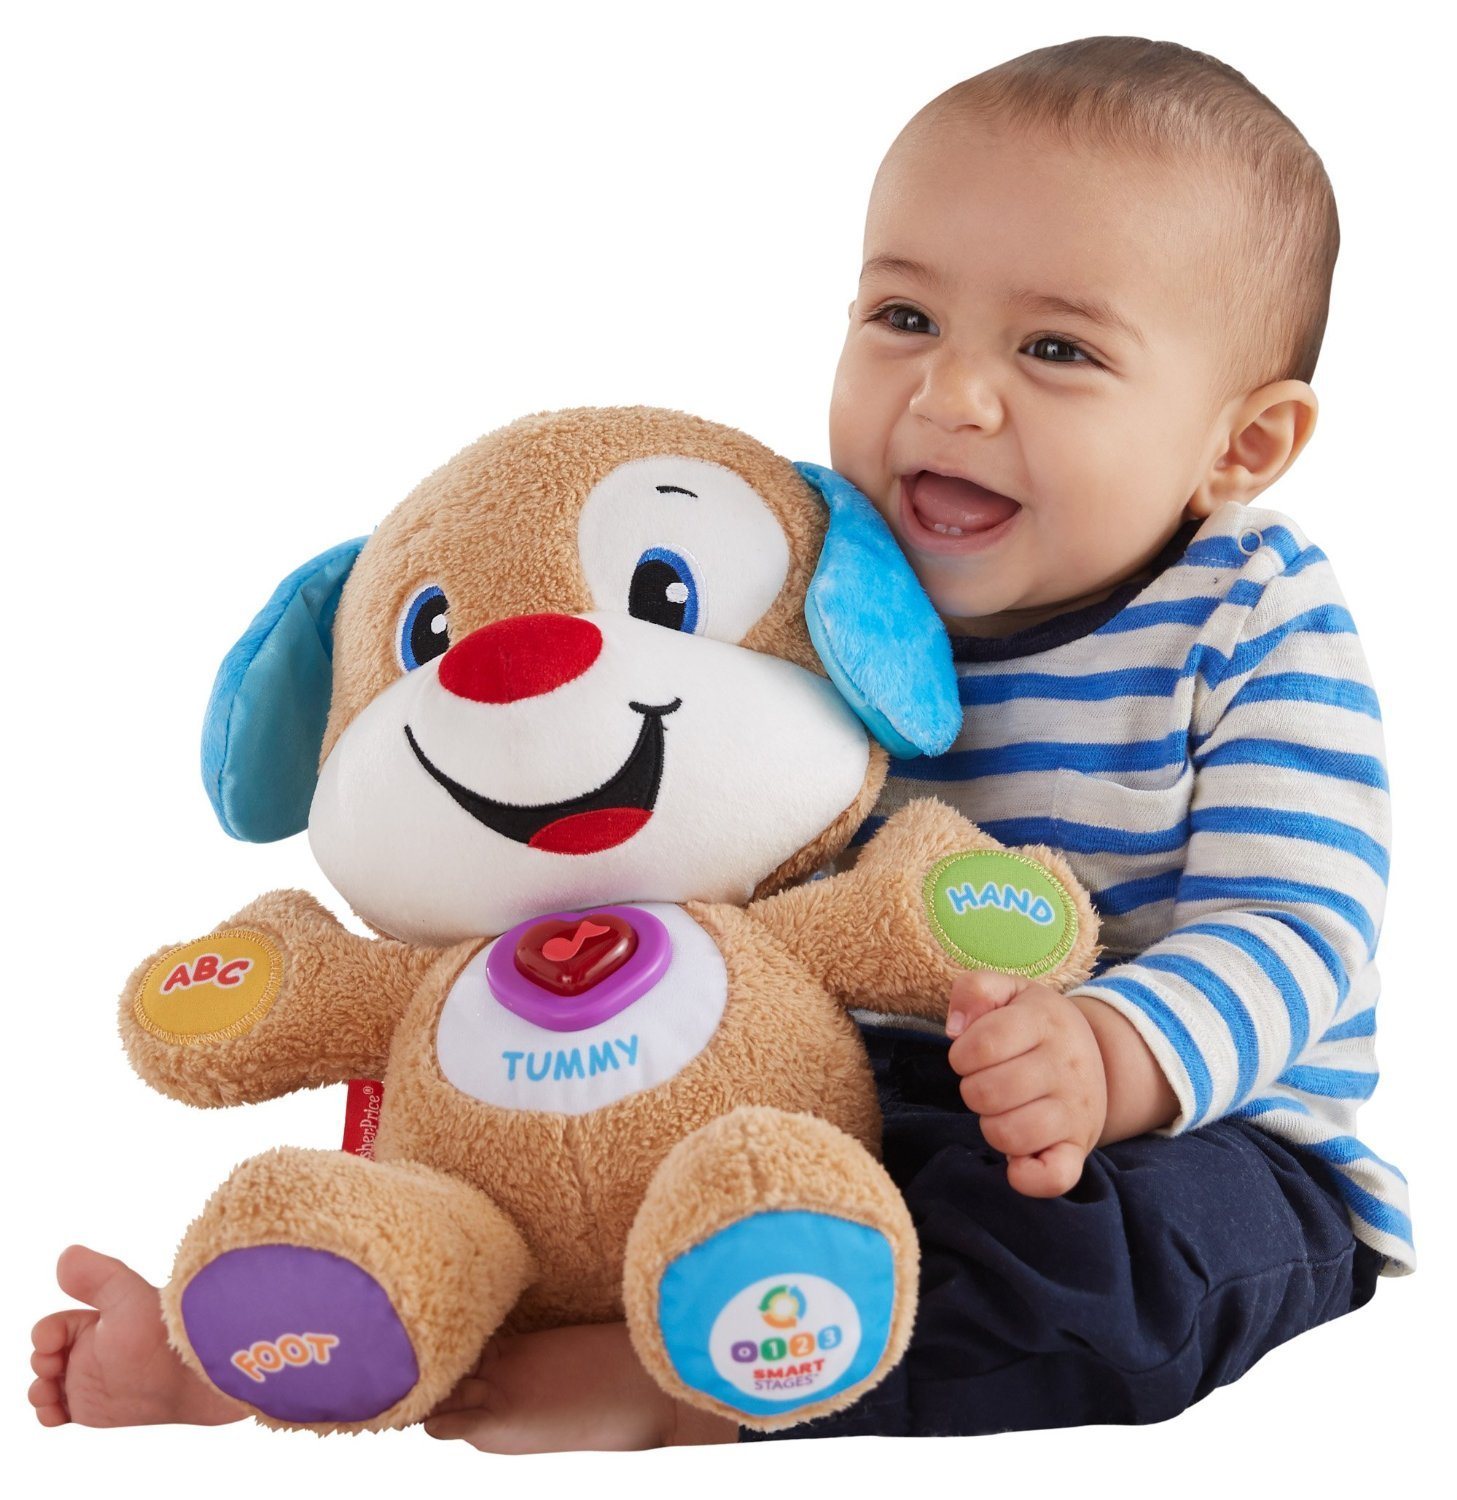 Fisher-Price Laugh & Learn Smart Stages Puppy Mattel BLW32